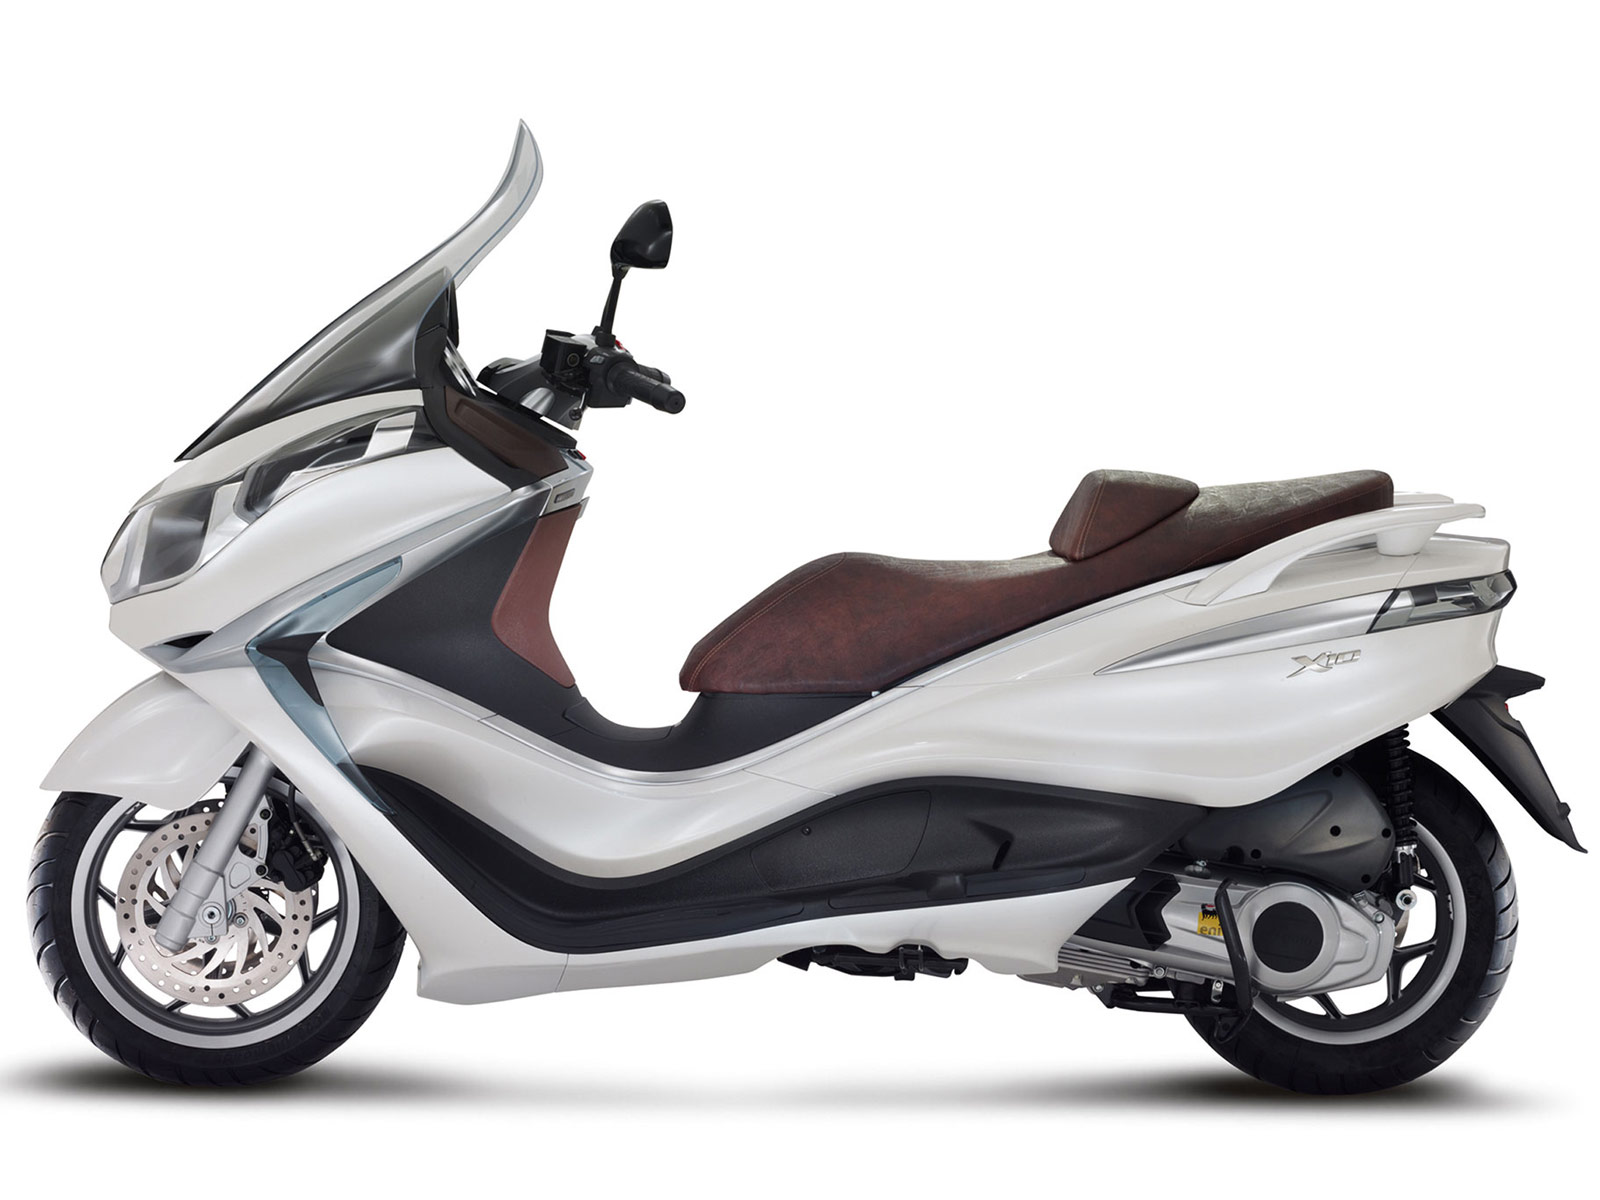 scooter pictures 2013 piaggio x10 125 insurance. Black Bedroom Furniture Sets. Home Design Ideas